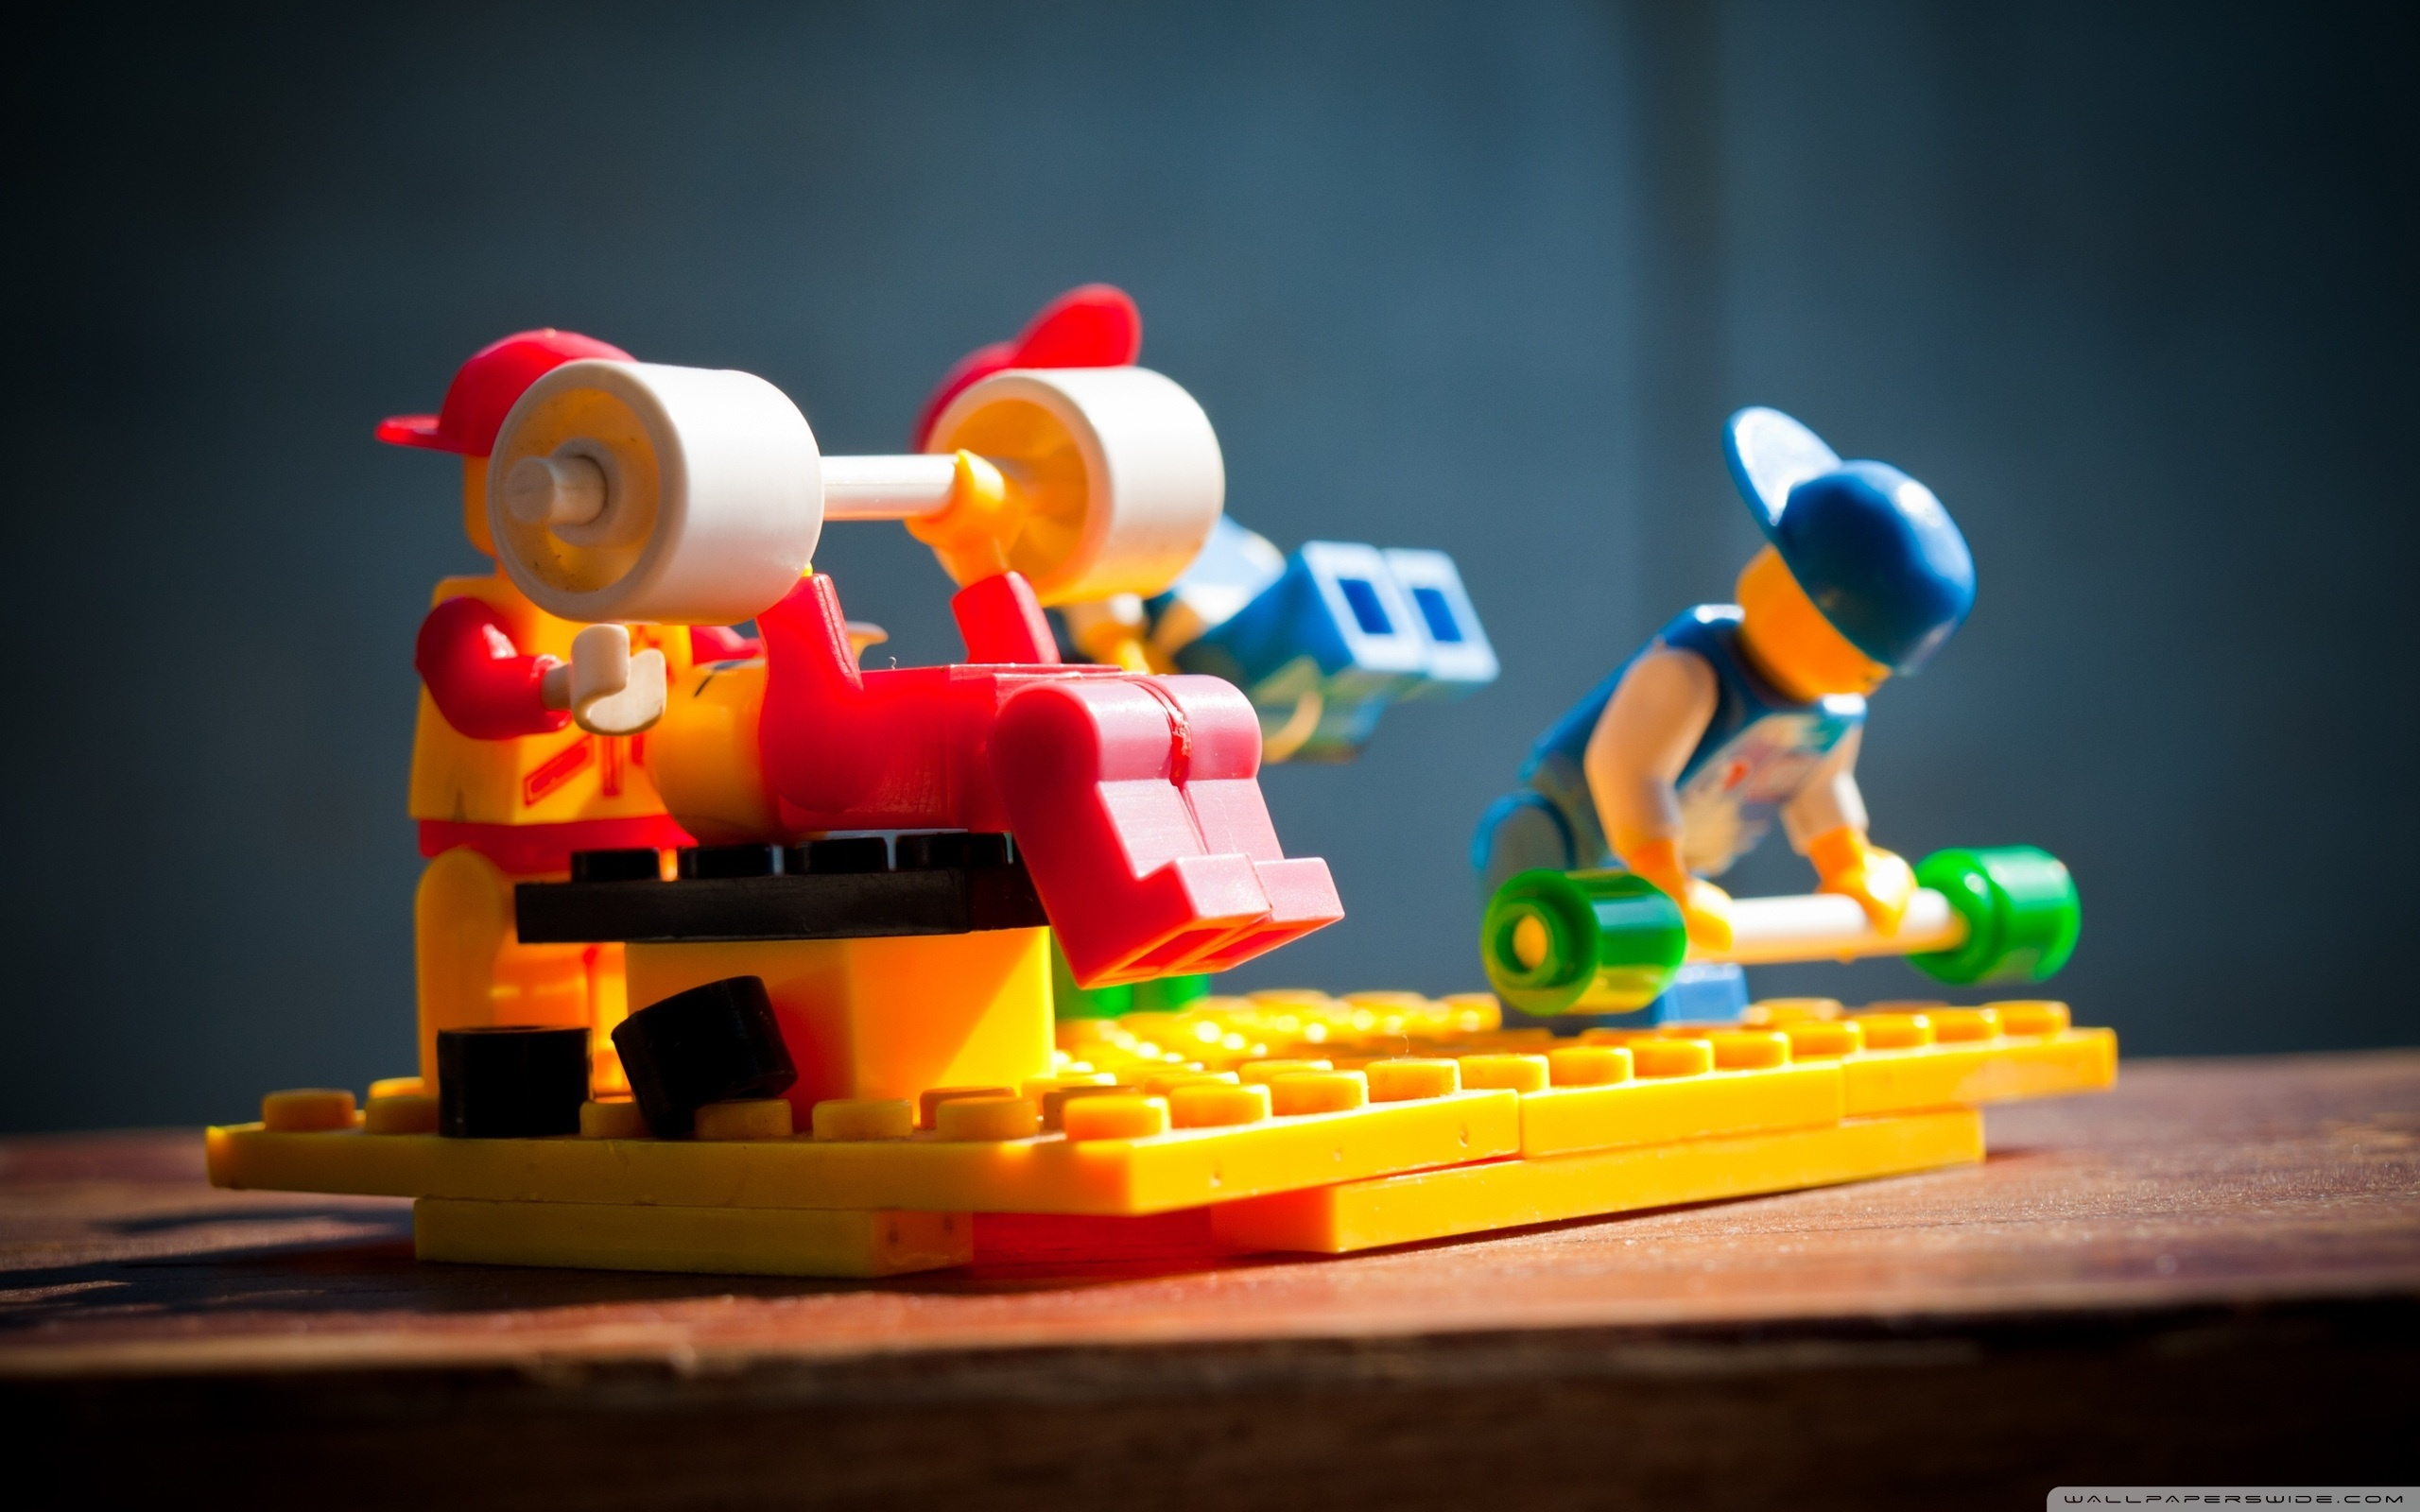 Lego wallpapers and images   wallpapers pictures photos 2560x1600